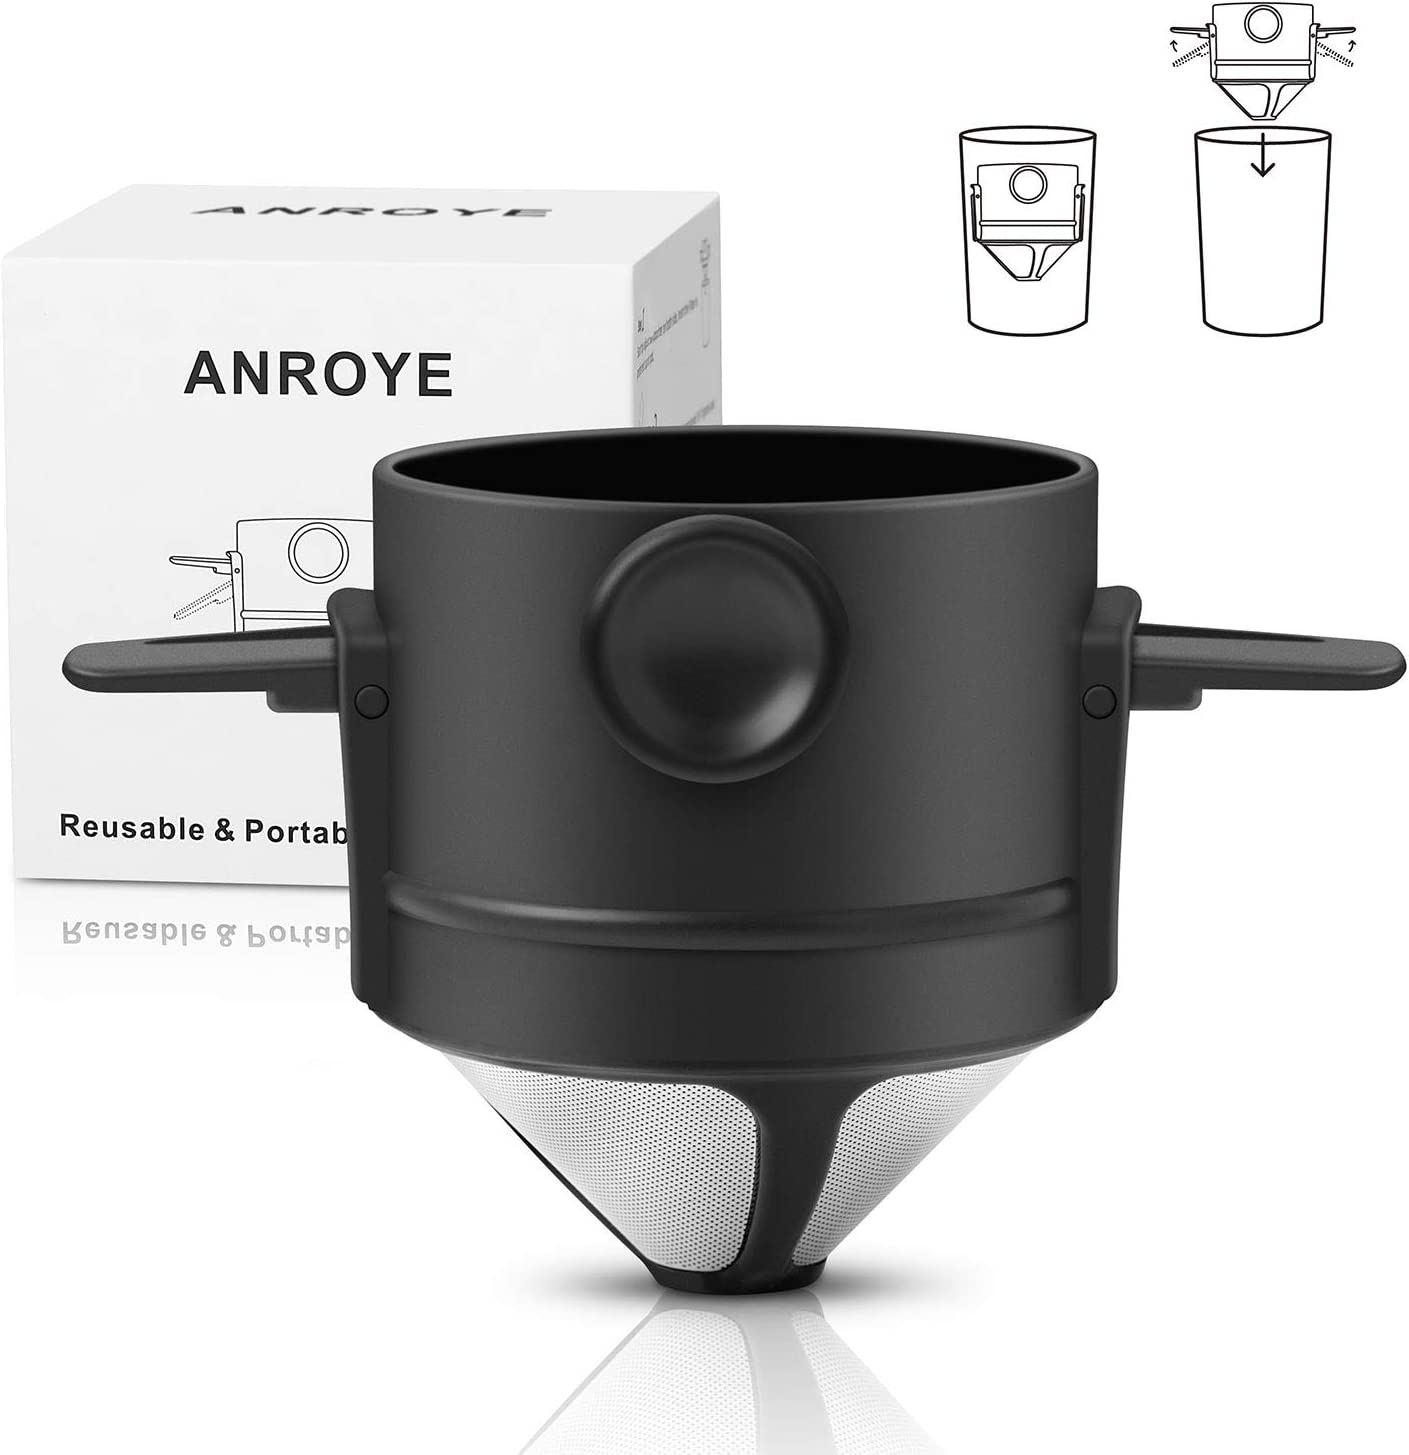 Mini Collapsible Paperless Single Serve 1-2 Cup Coffee Maker for Travel Camping Offices Backpacking Portable Stainless Steel Reusable Coffee Dripper Cone Pour Over Coffee Filter